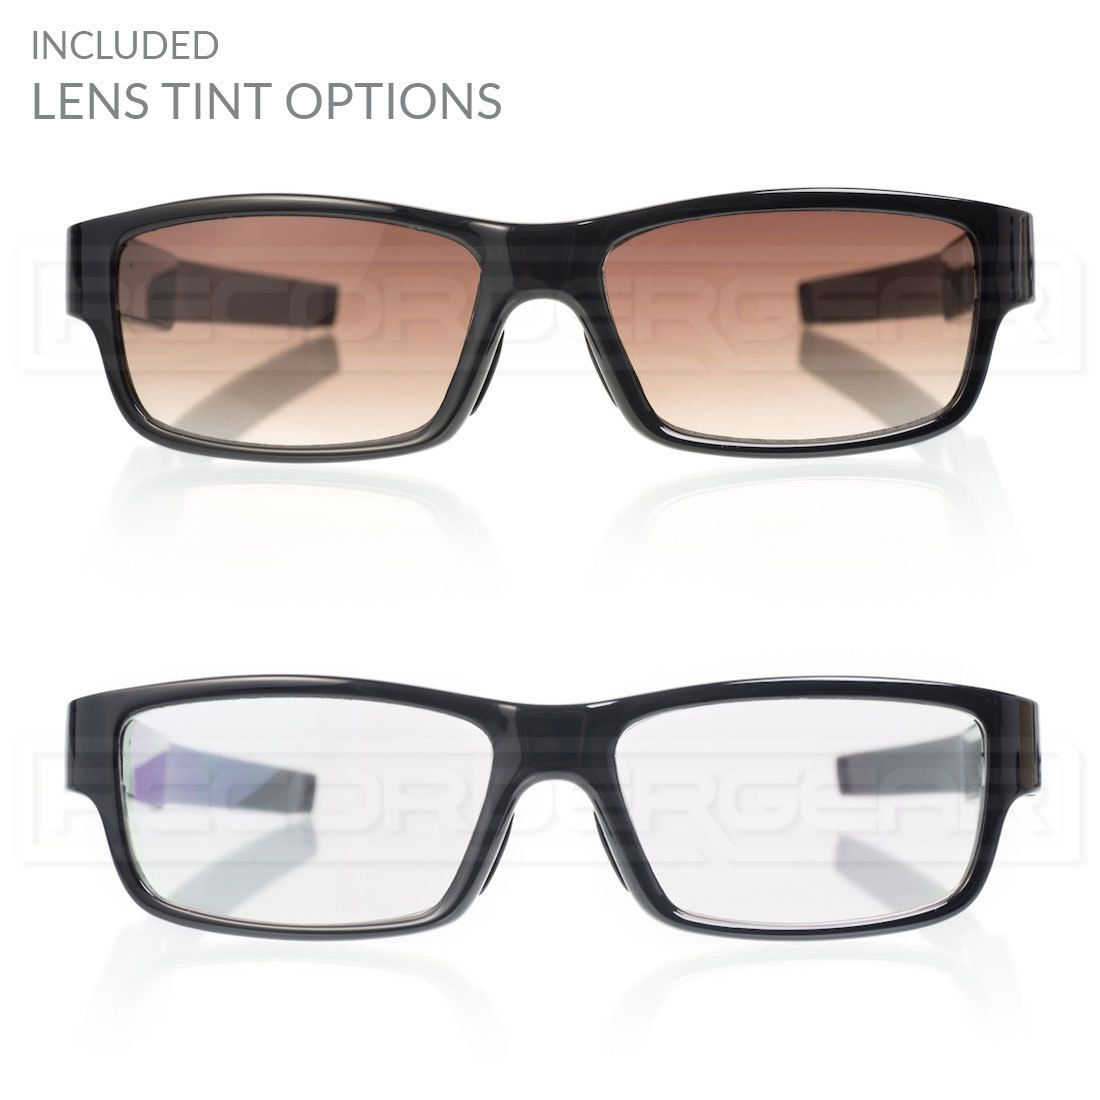 634a85124d The CG1000 Camera Glasses includes optional tinted lenses More